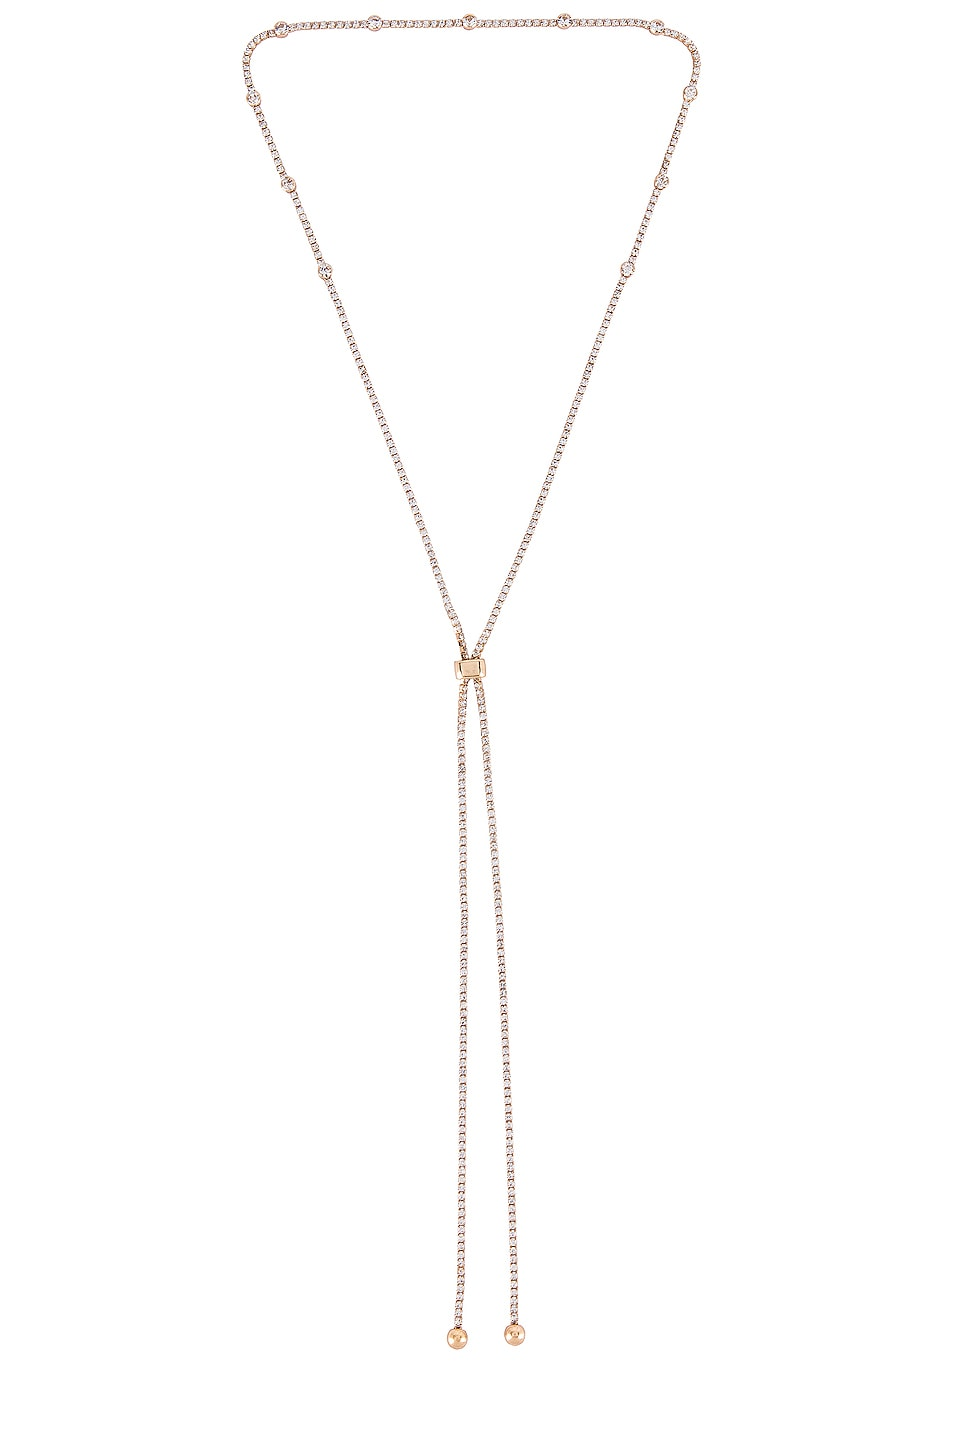 Ettika Adjustable Chain Necklace in Gold